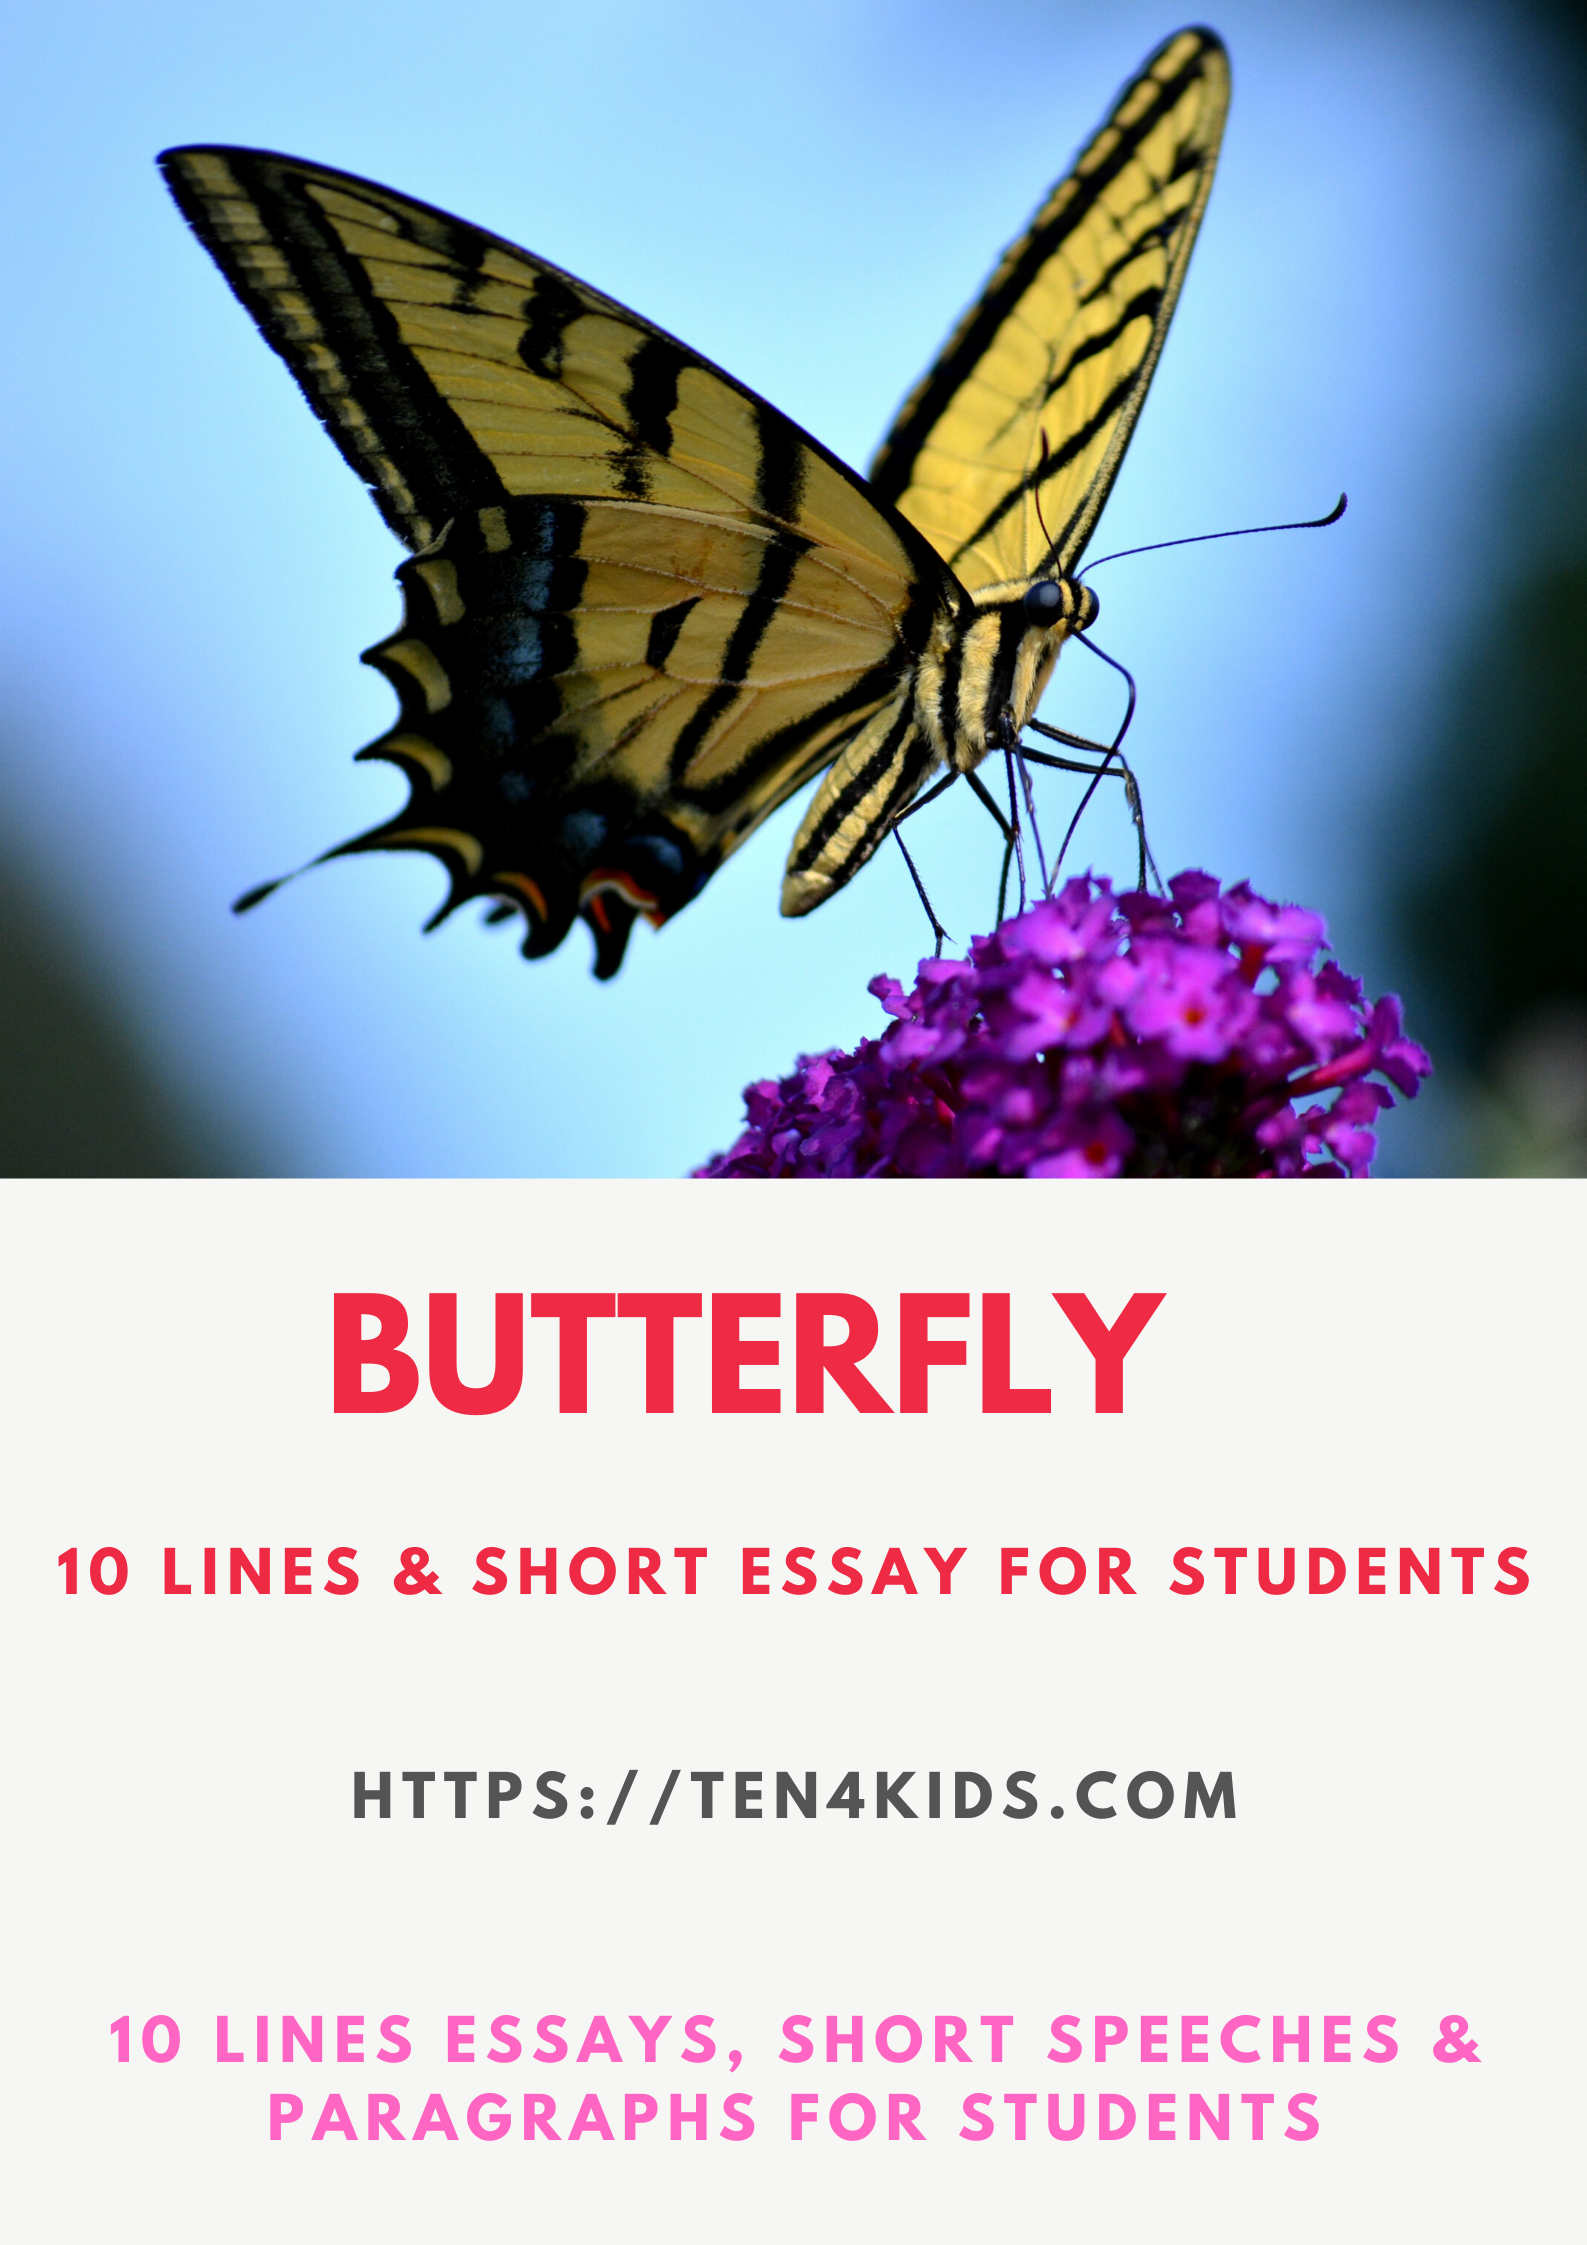 Essat on Butterfly for students